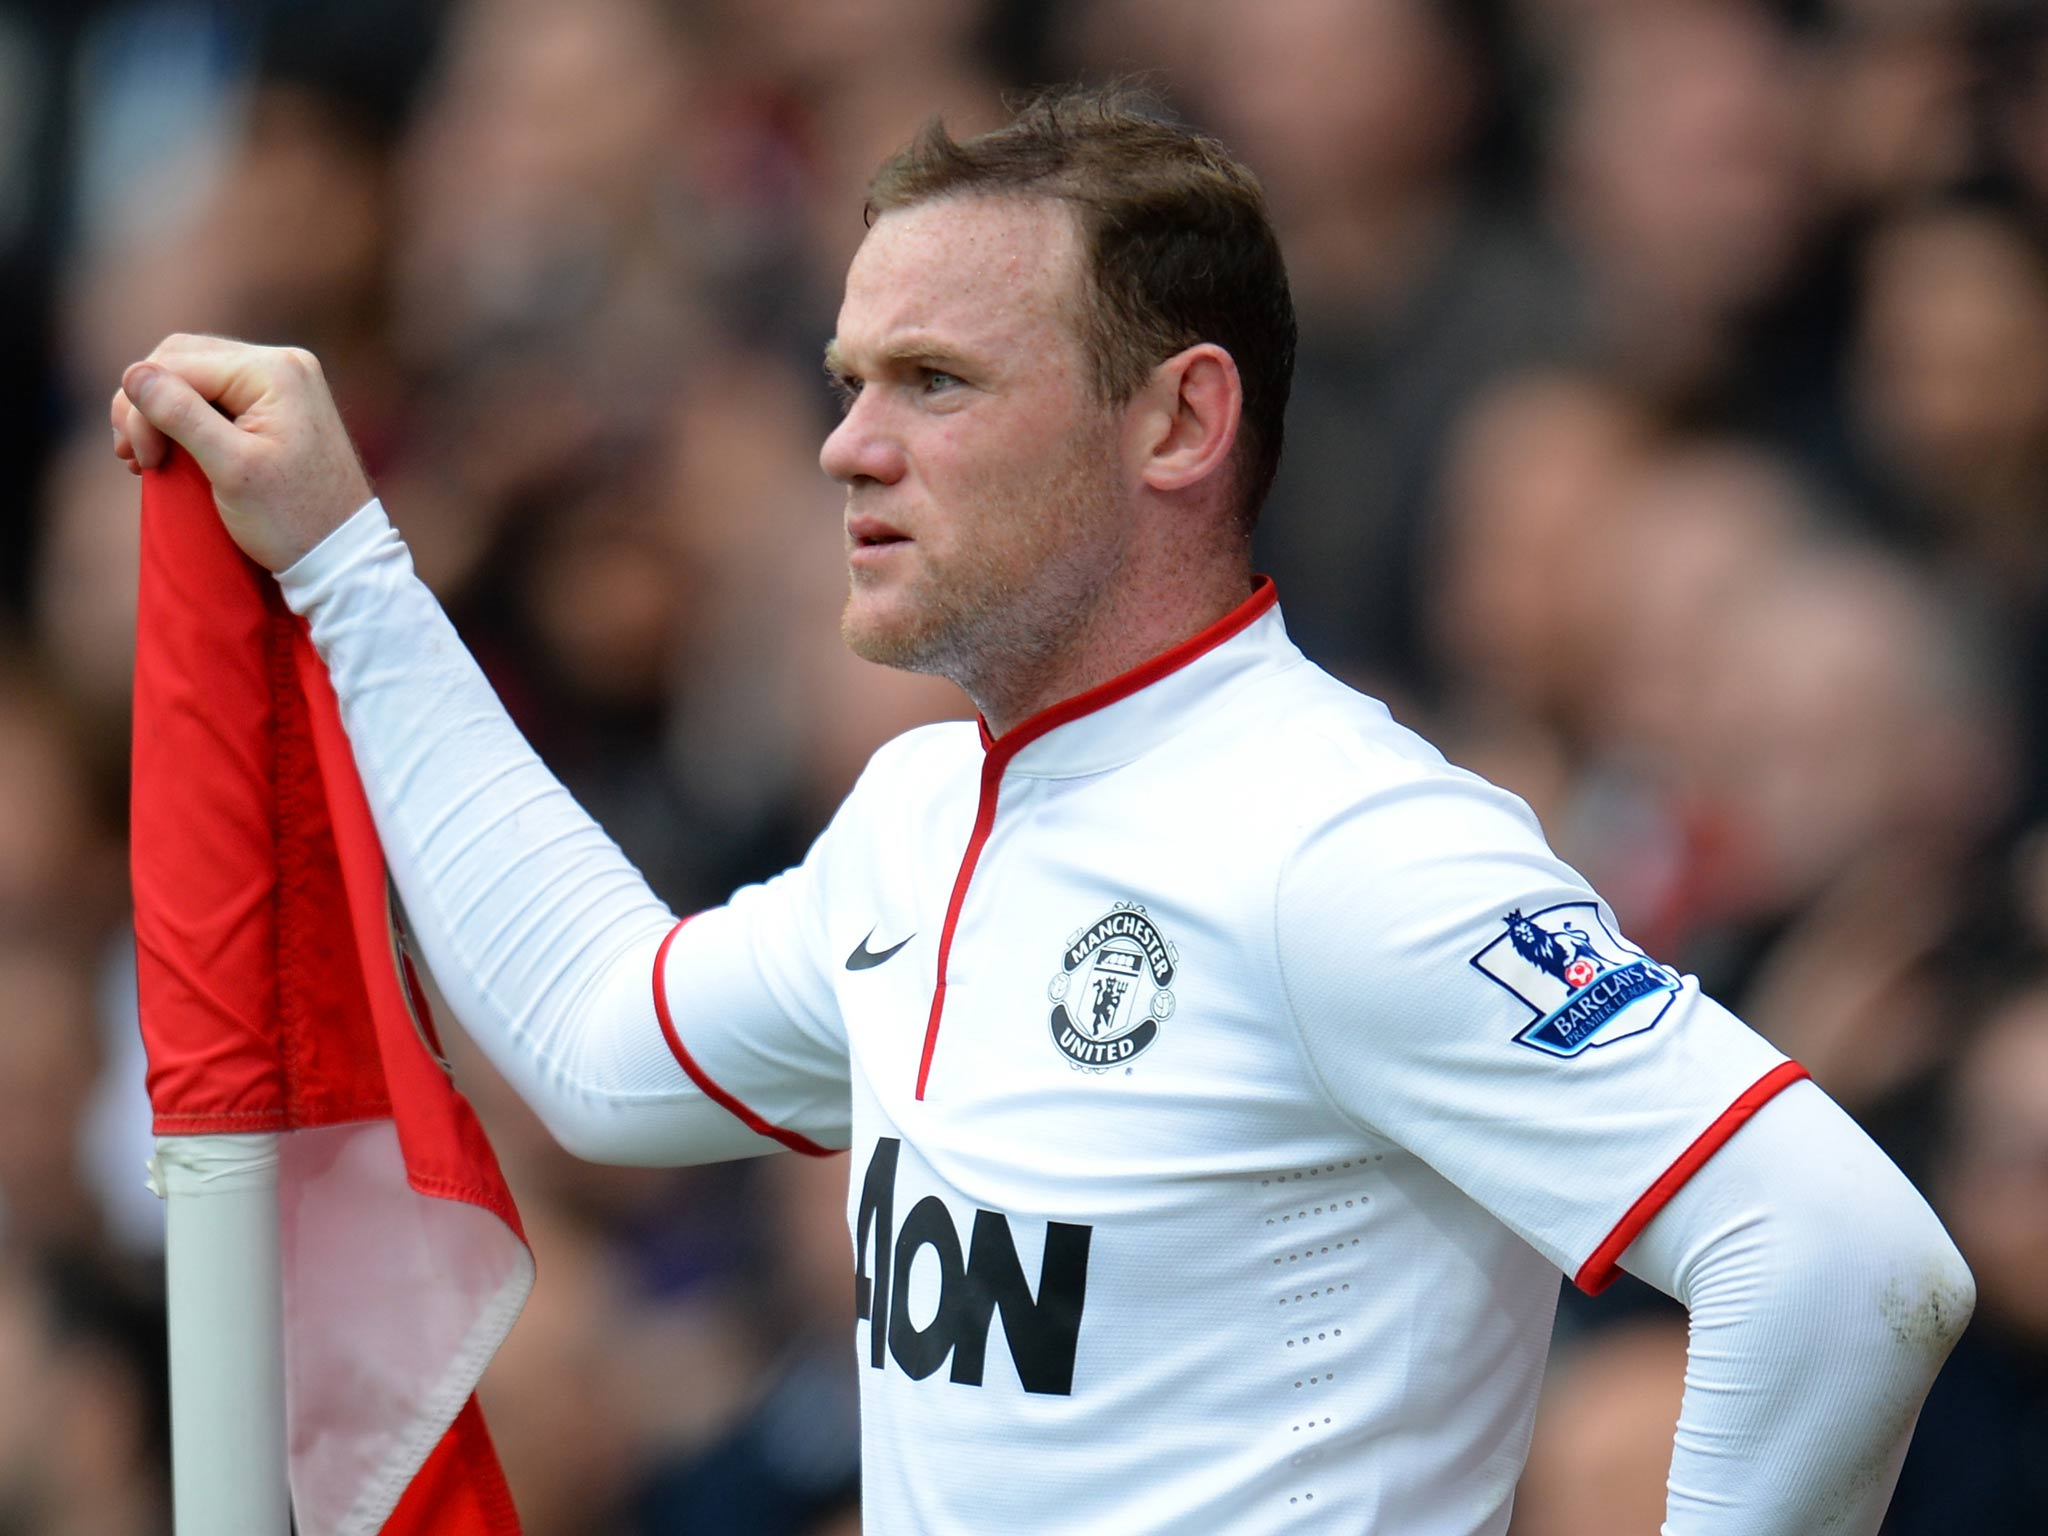 Newcastle  preparing shock bid  for Manchester United striker Wayne Rooney  claims Sports Direct website dc9b2f5c1d66